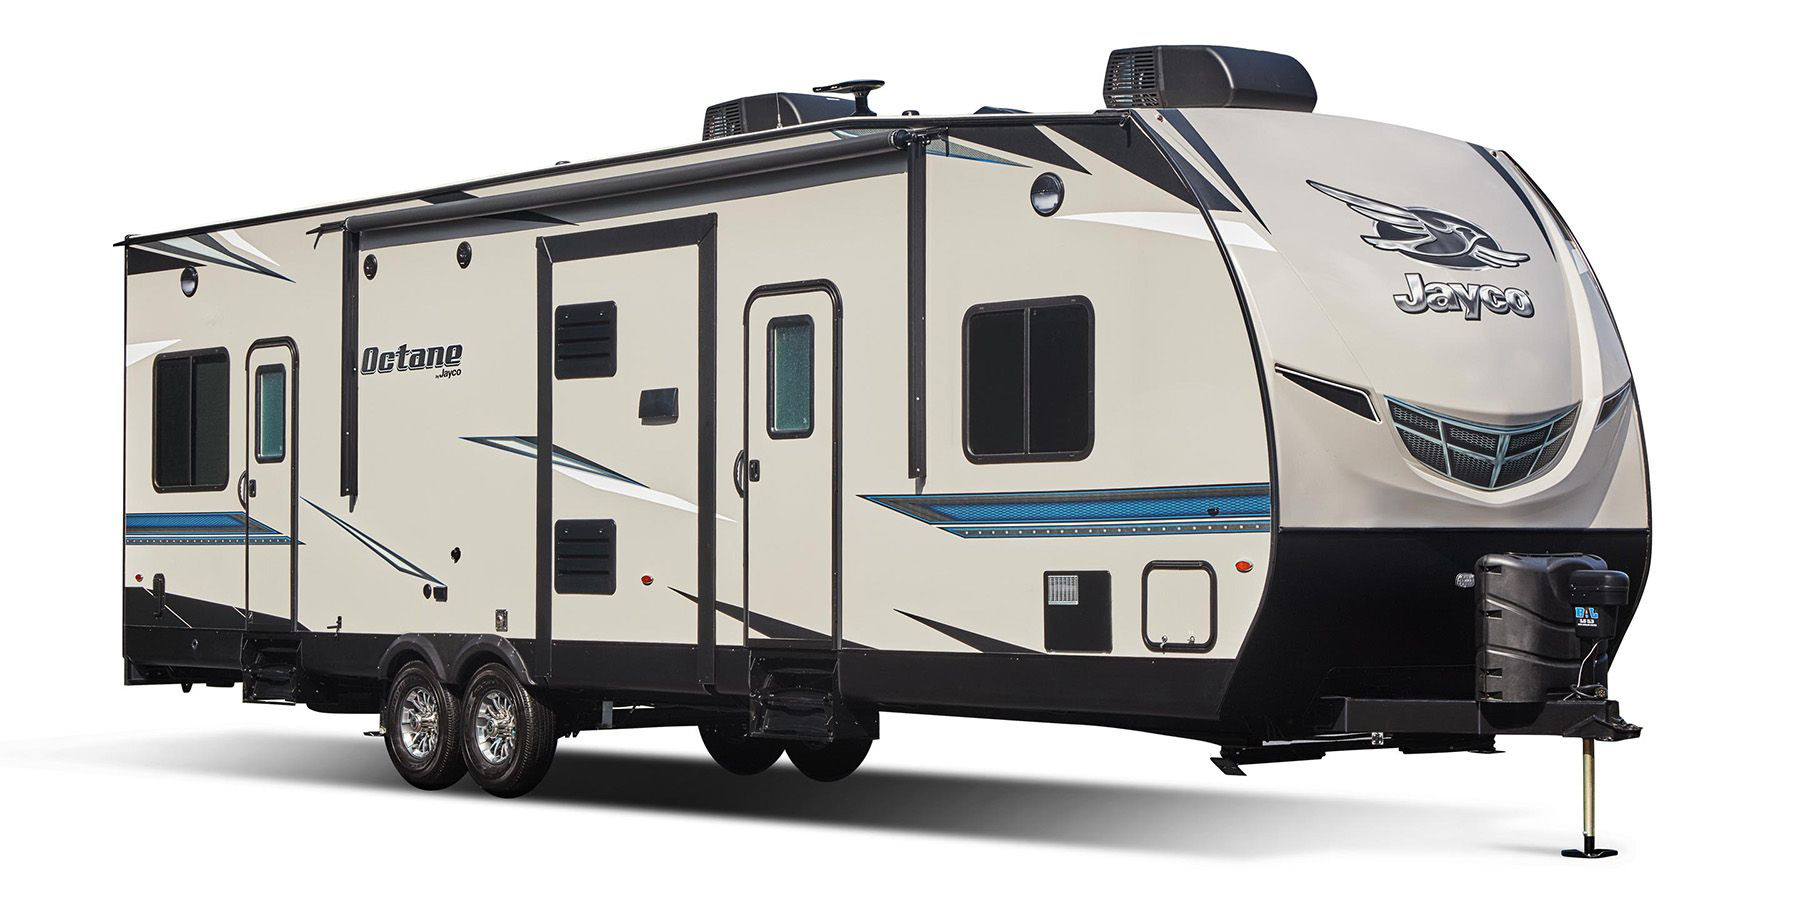 Image result for 2018 Jayco Octane model VH